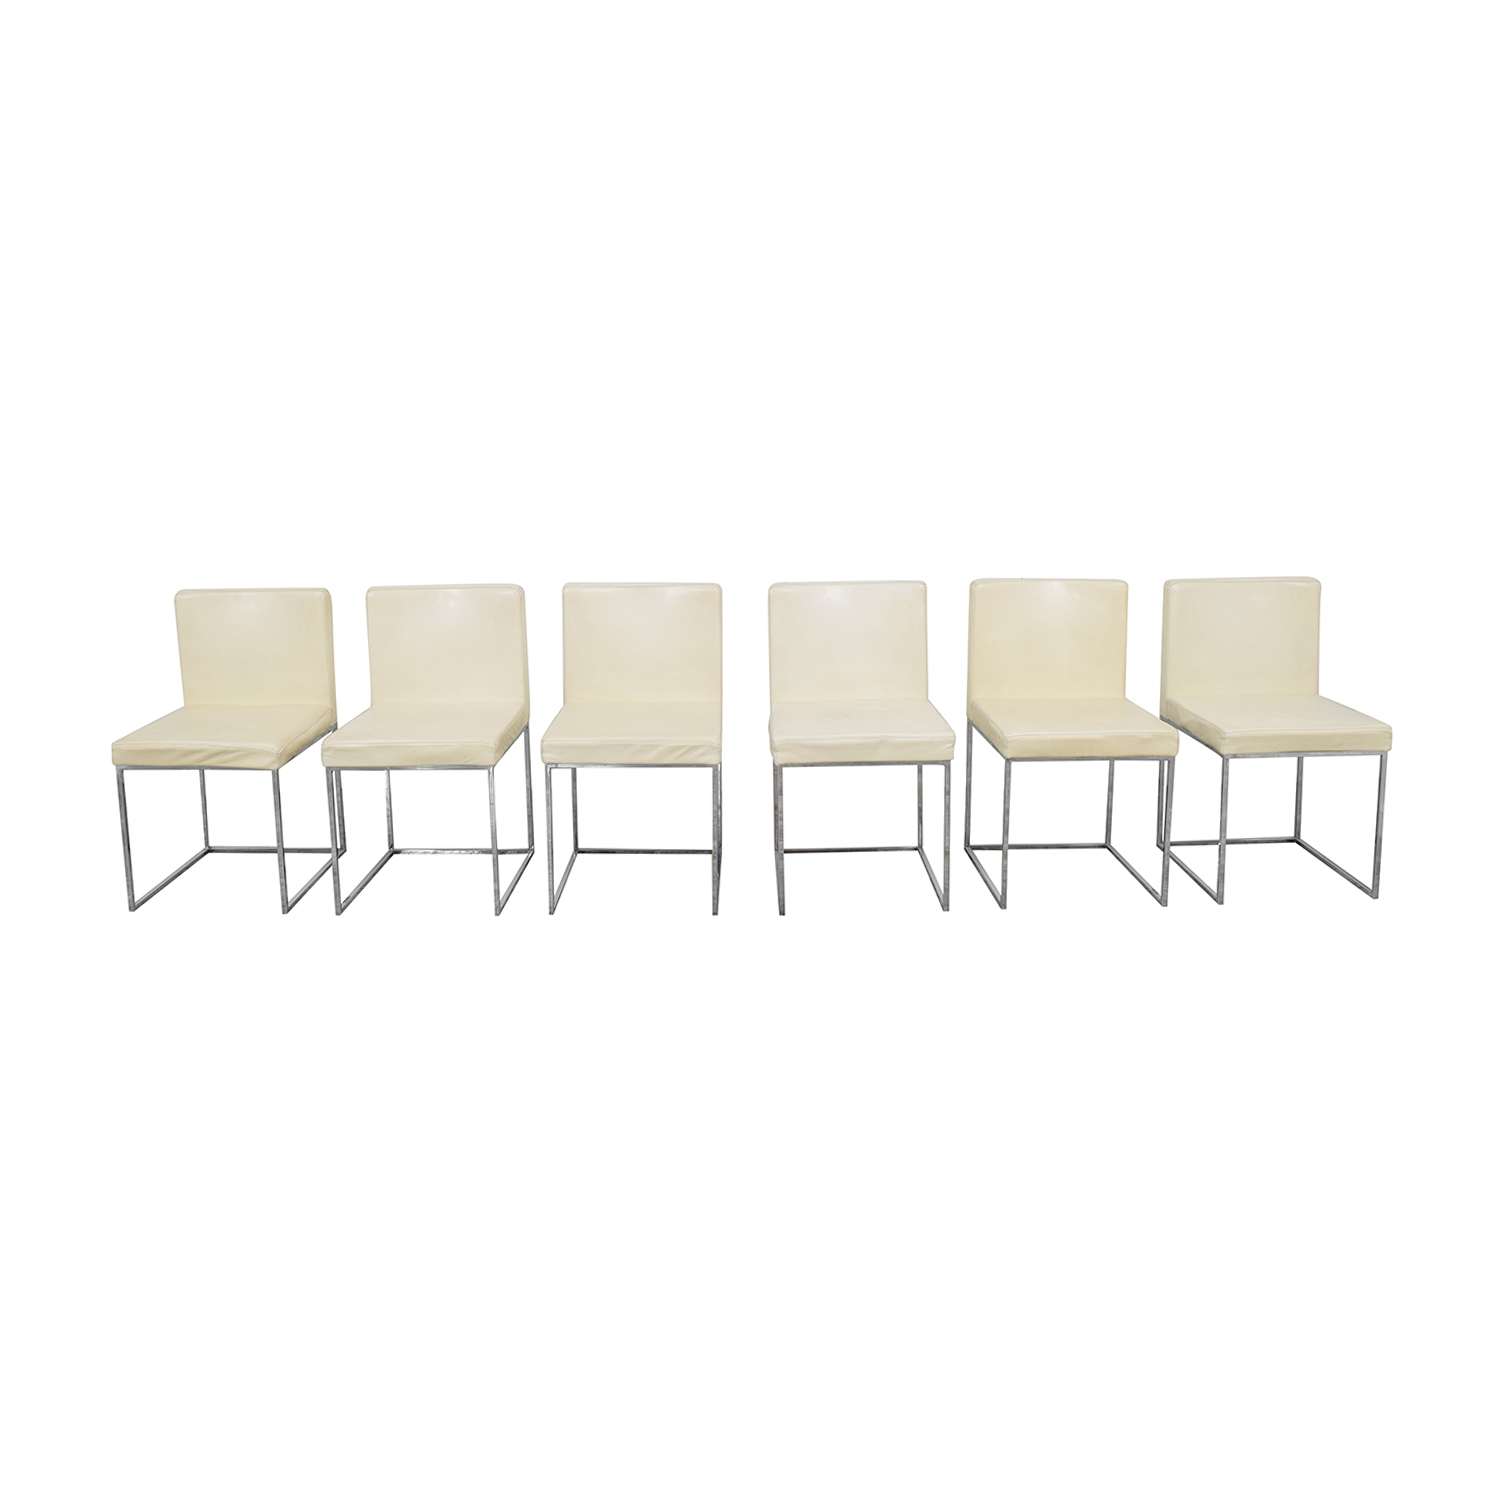 Calligaris Calligaris Even Plus Leather Chairs for sale